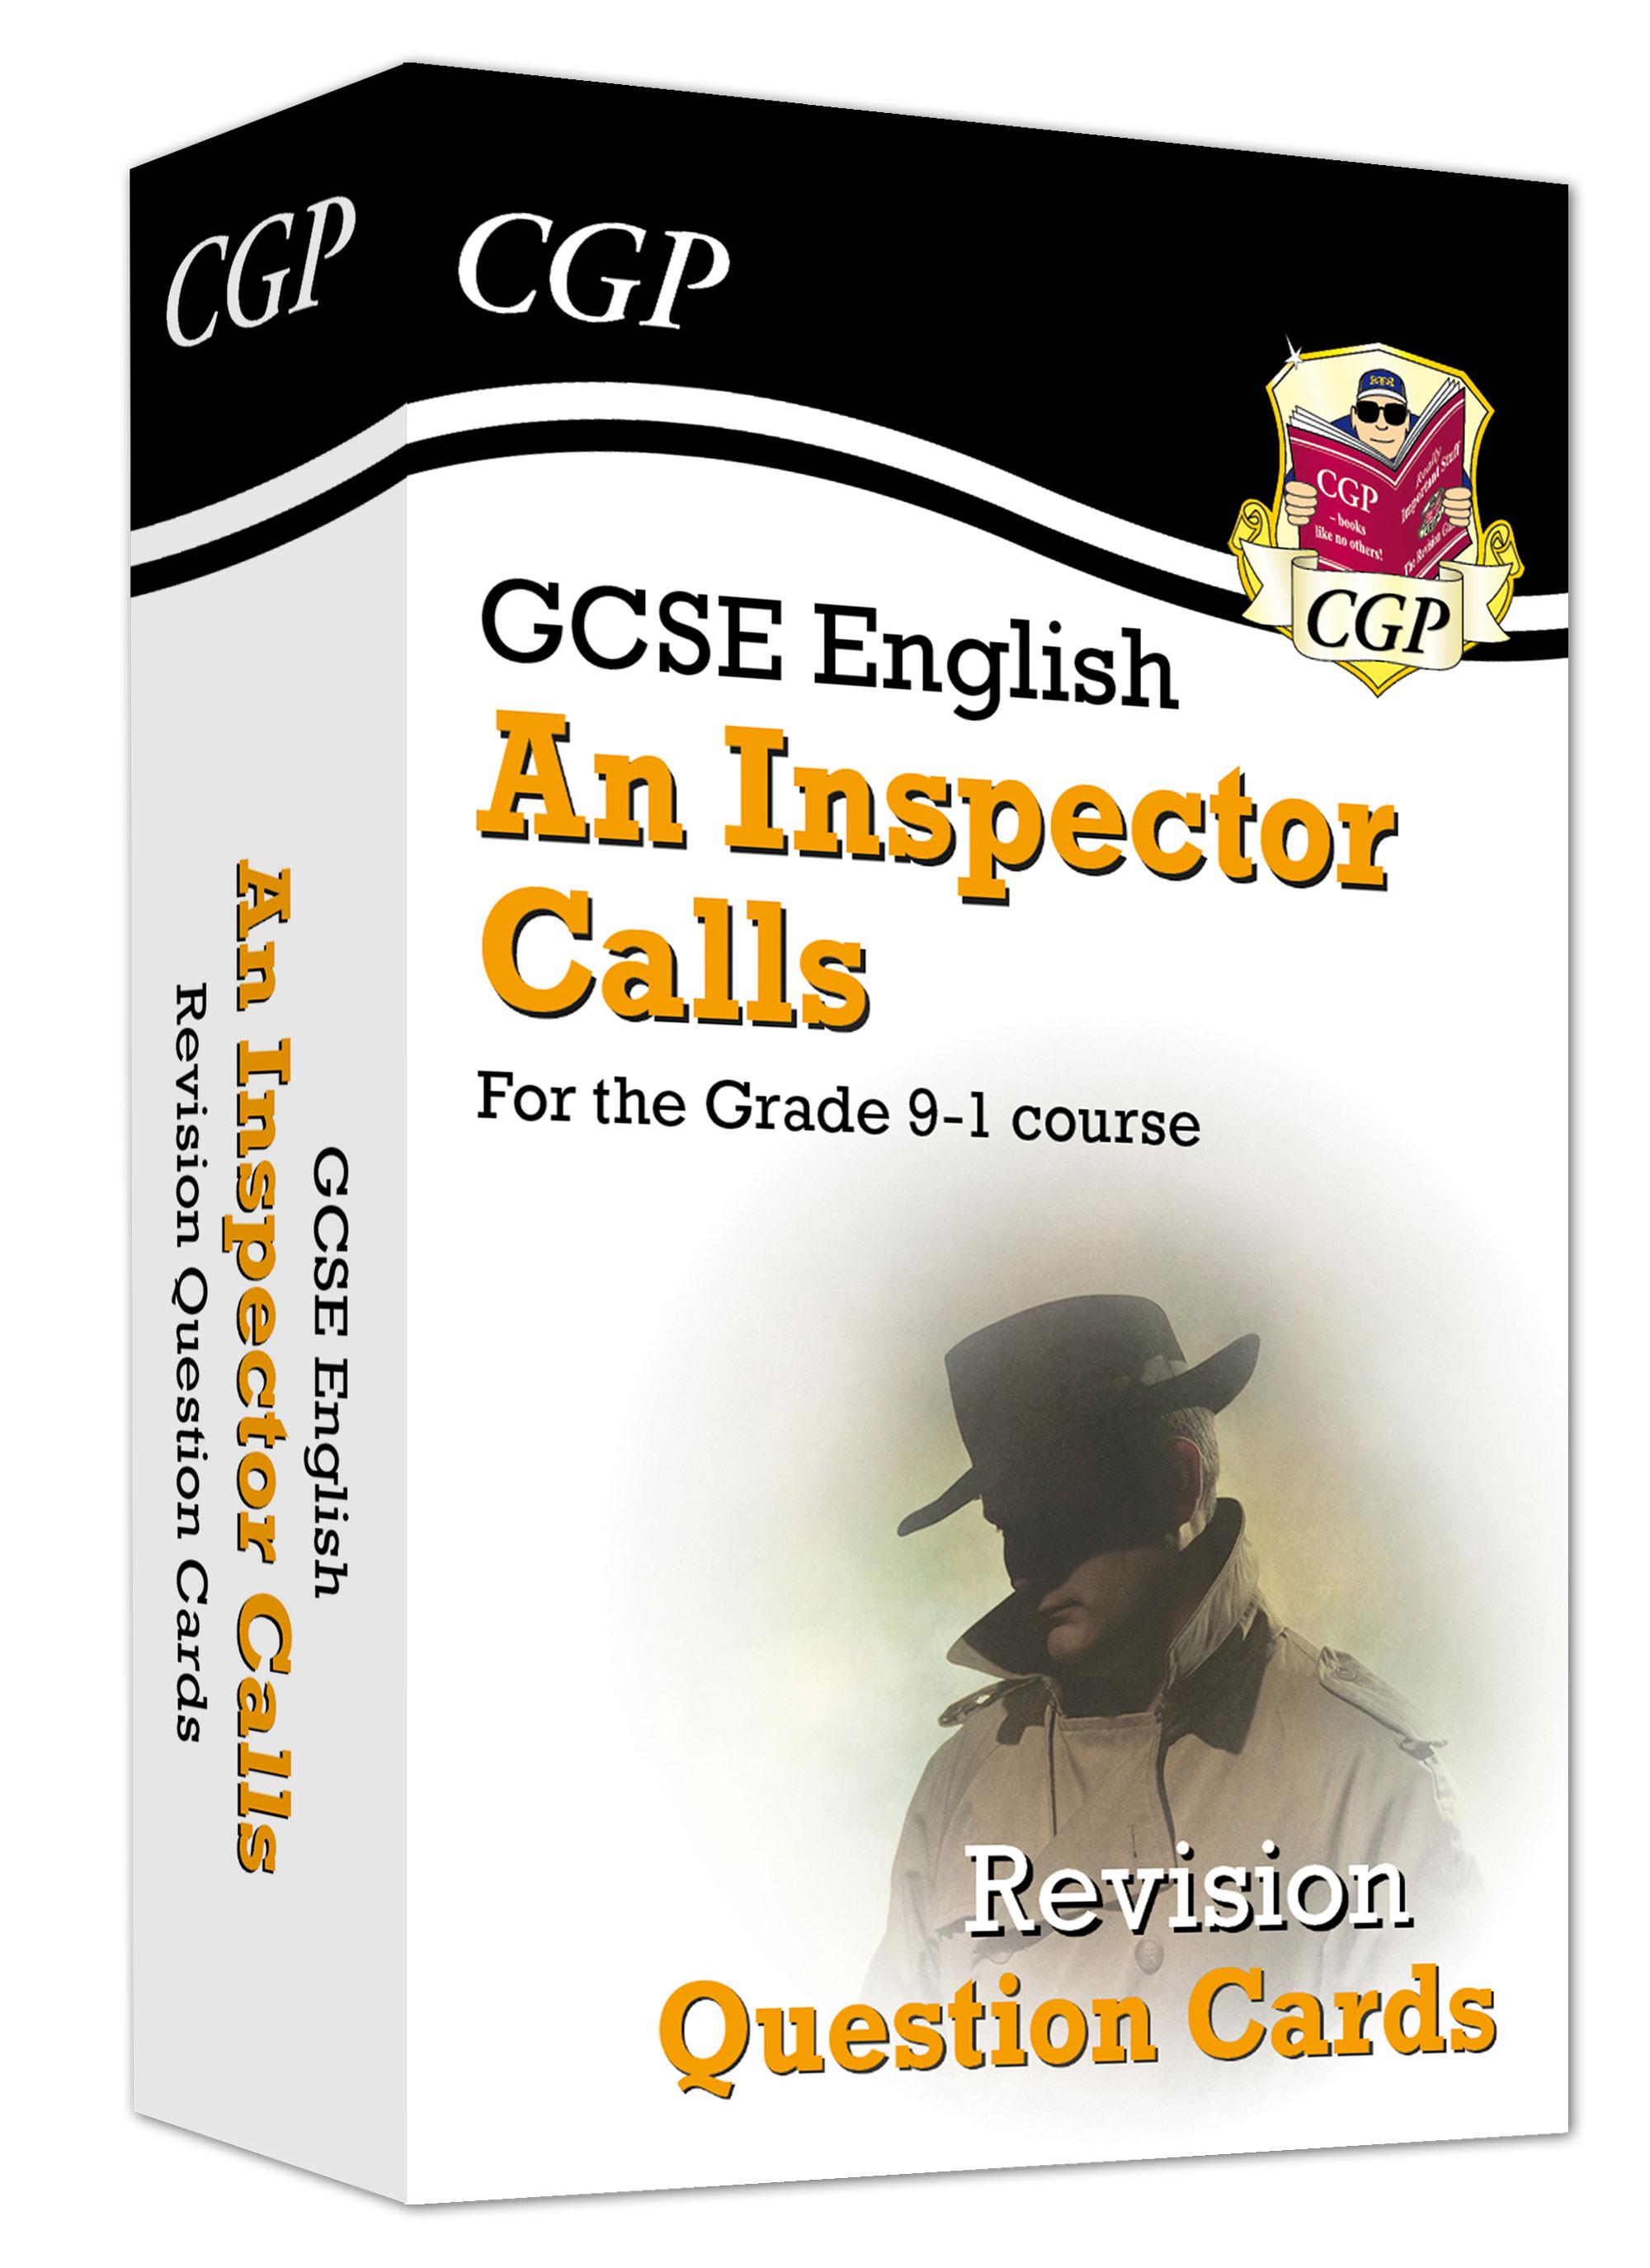 ETFI41D - New Grade 9-1 GCSE English - An Inspector Calls Revision Question Cards Online Edition